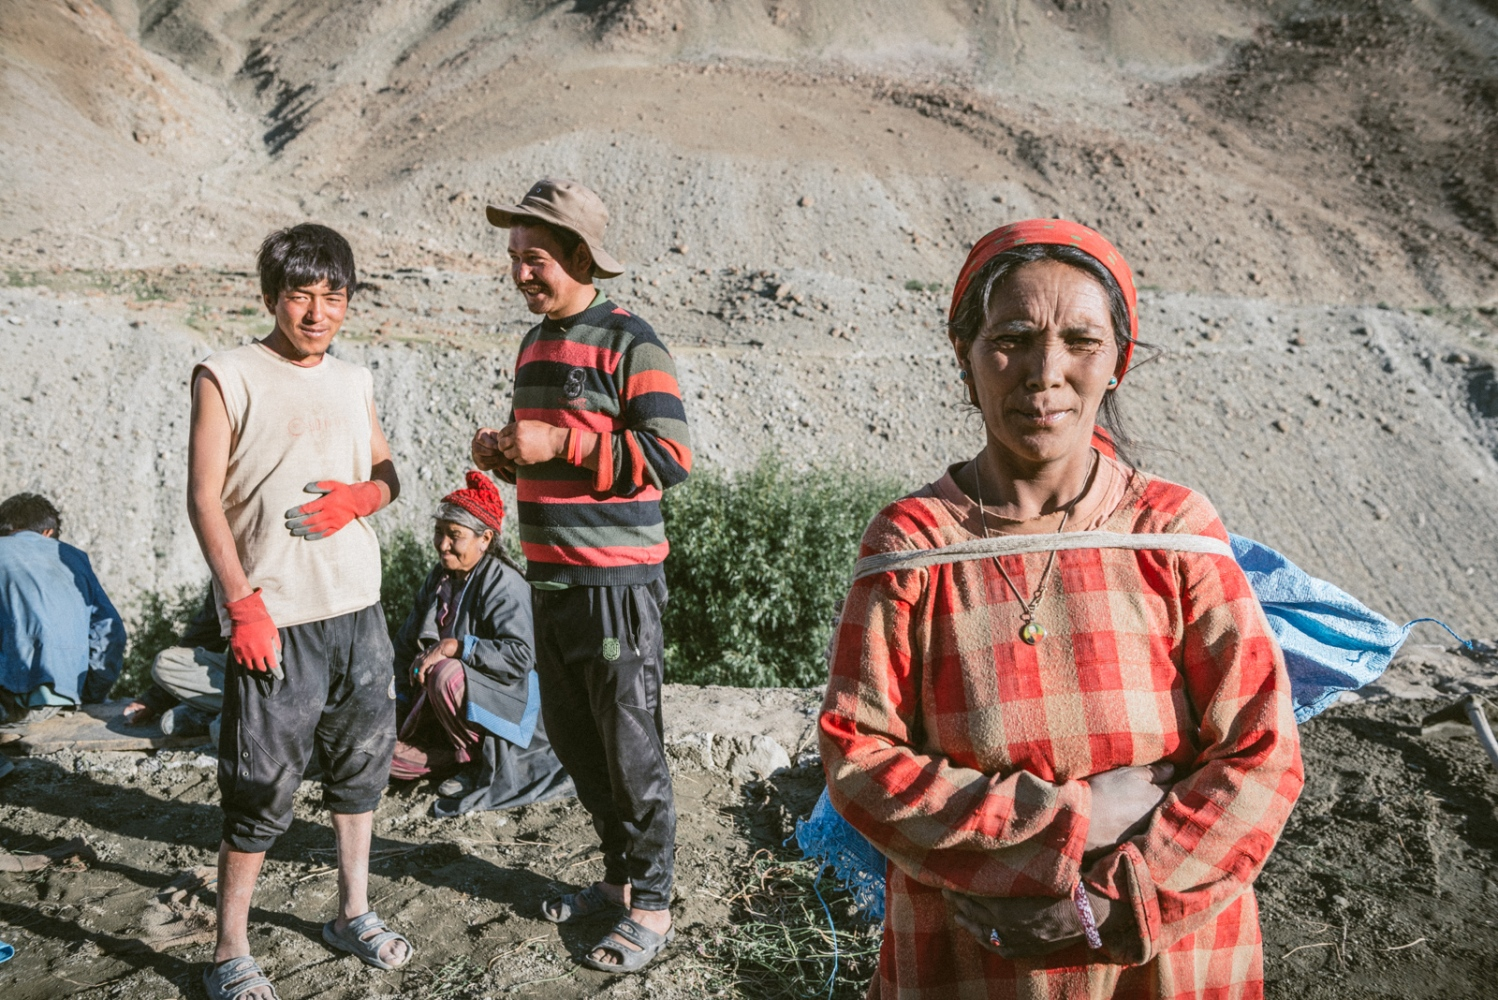 Local residents of Domkhar Gongma village in Ladakh gather together to build a traditionally designed home on the cliff side.